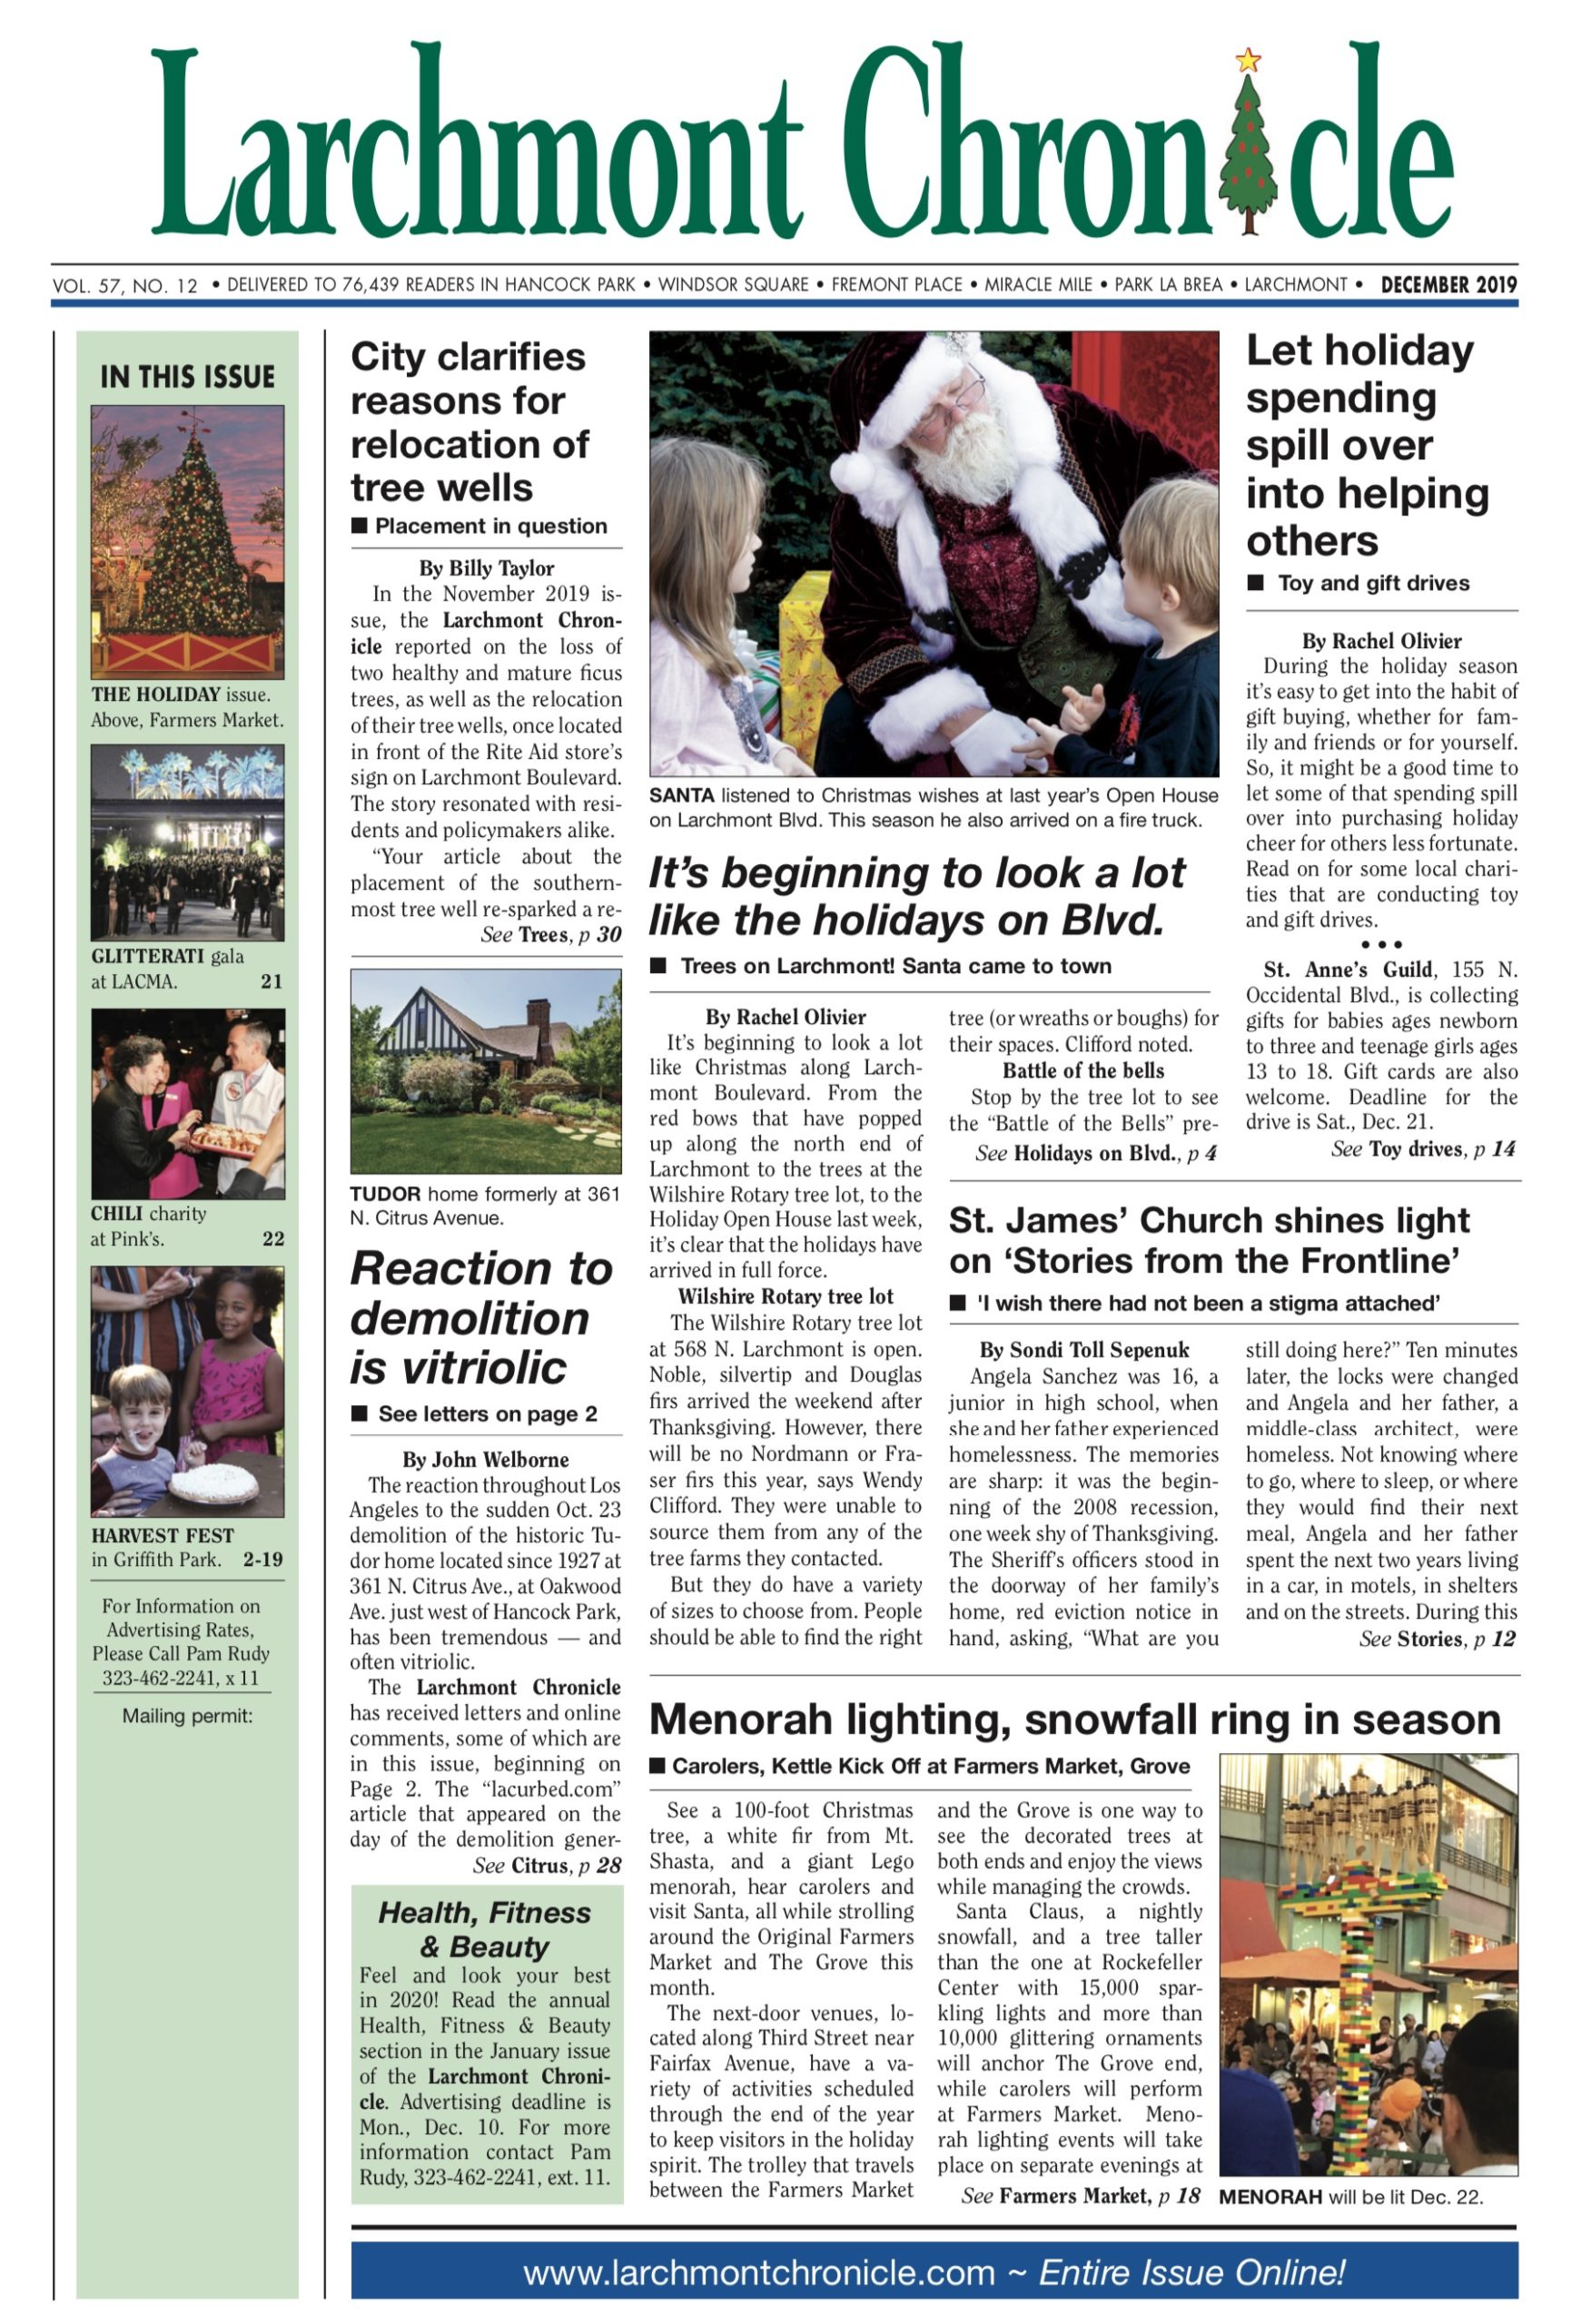 Larchmont Chronicle December 2019 full issue